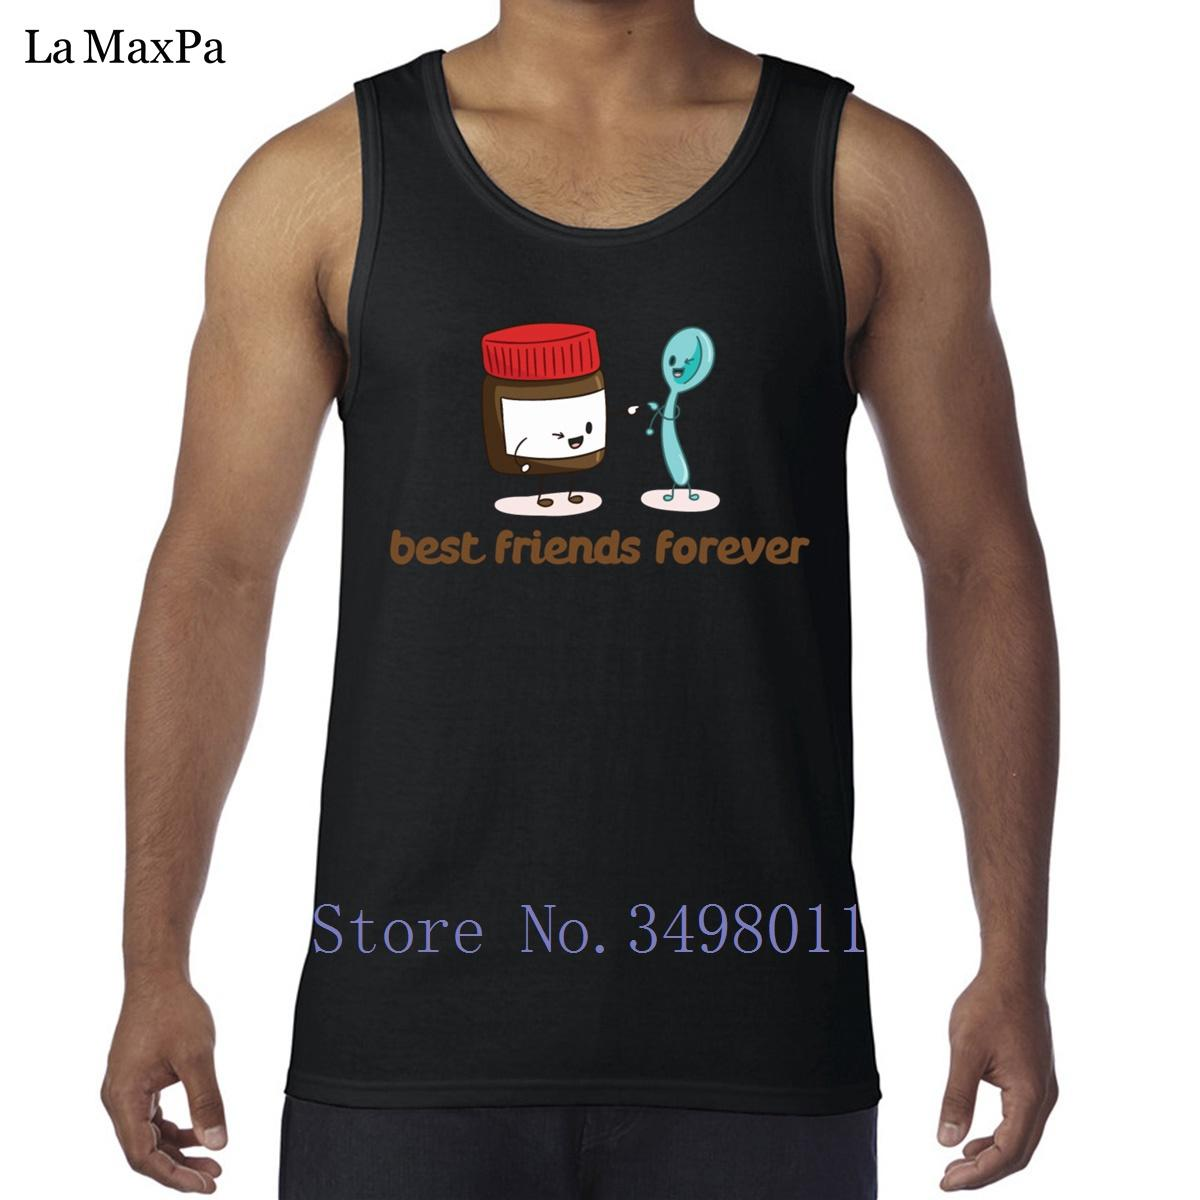 484824fc78 2019 Customized Kawaii Happy Friendship Day Bestfriend Mens Tank Top  Bodybuilding Singlets Classical Vests For Men Sleeveless Workout From  Easme, ...